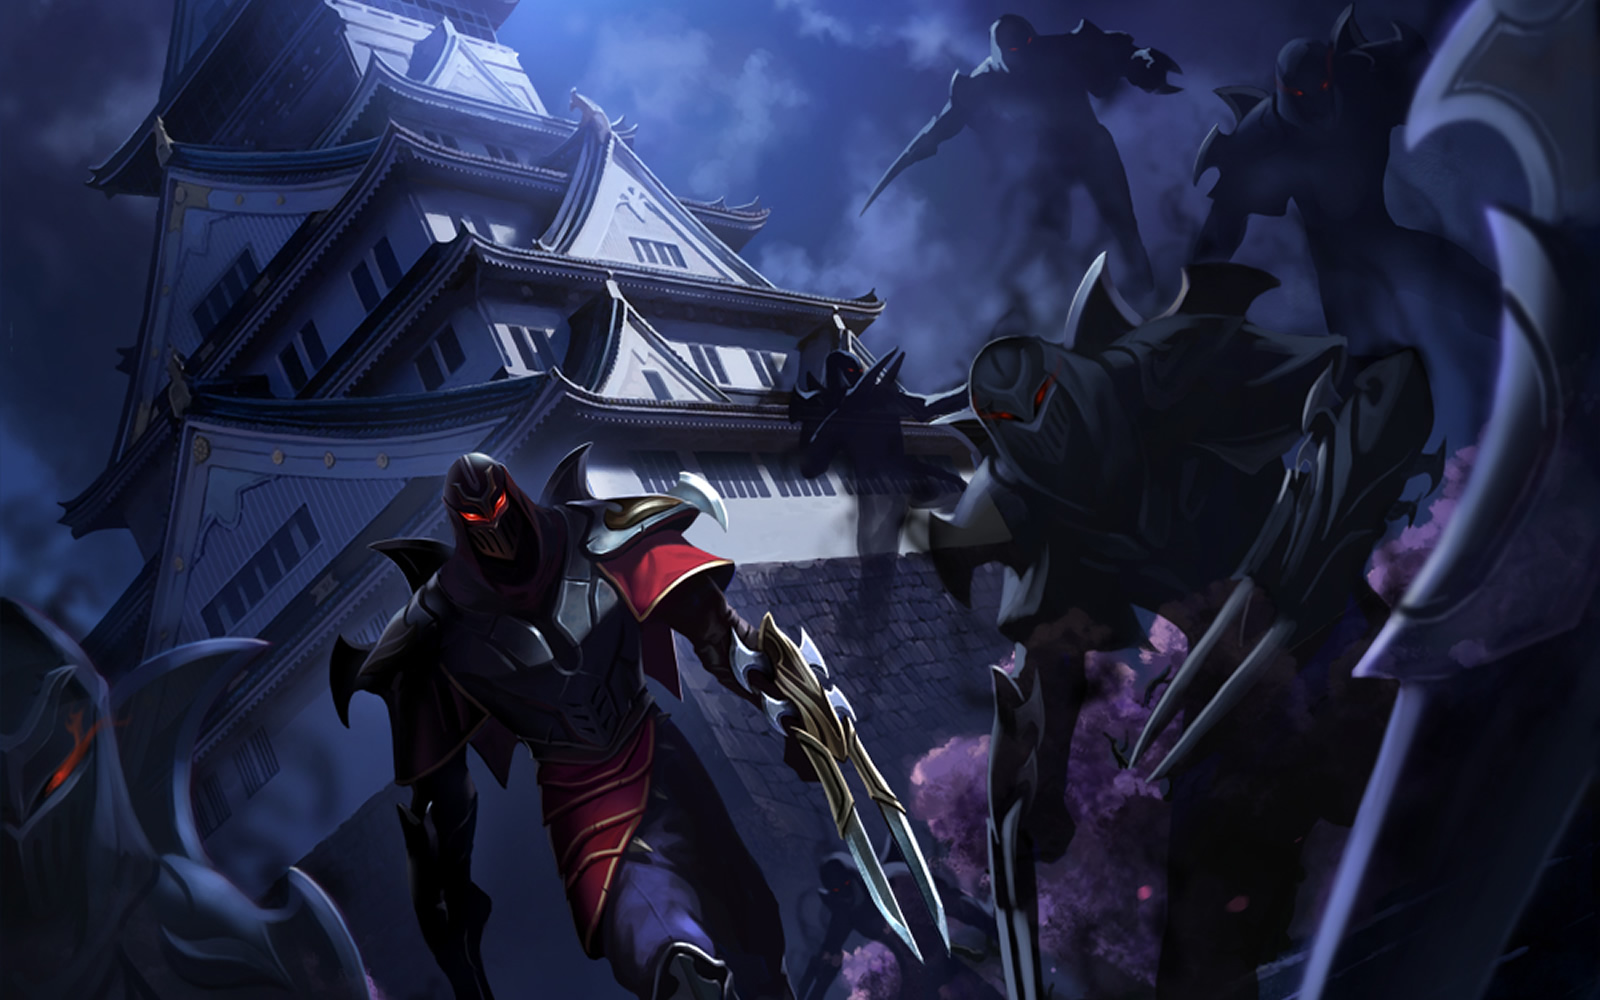 Wallpaper made out of zed s sneak peek image released by riot you